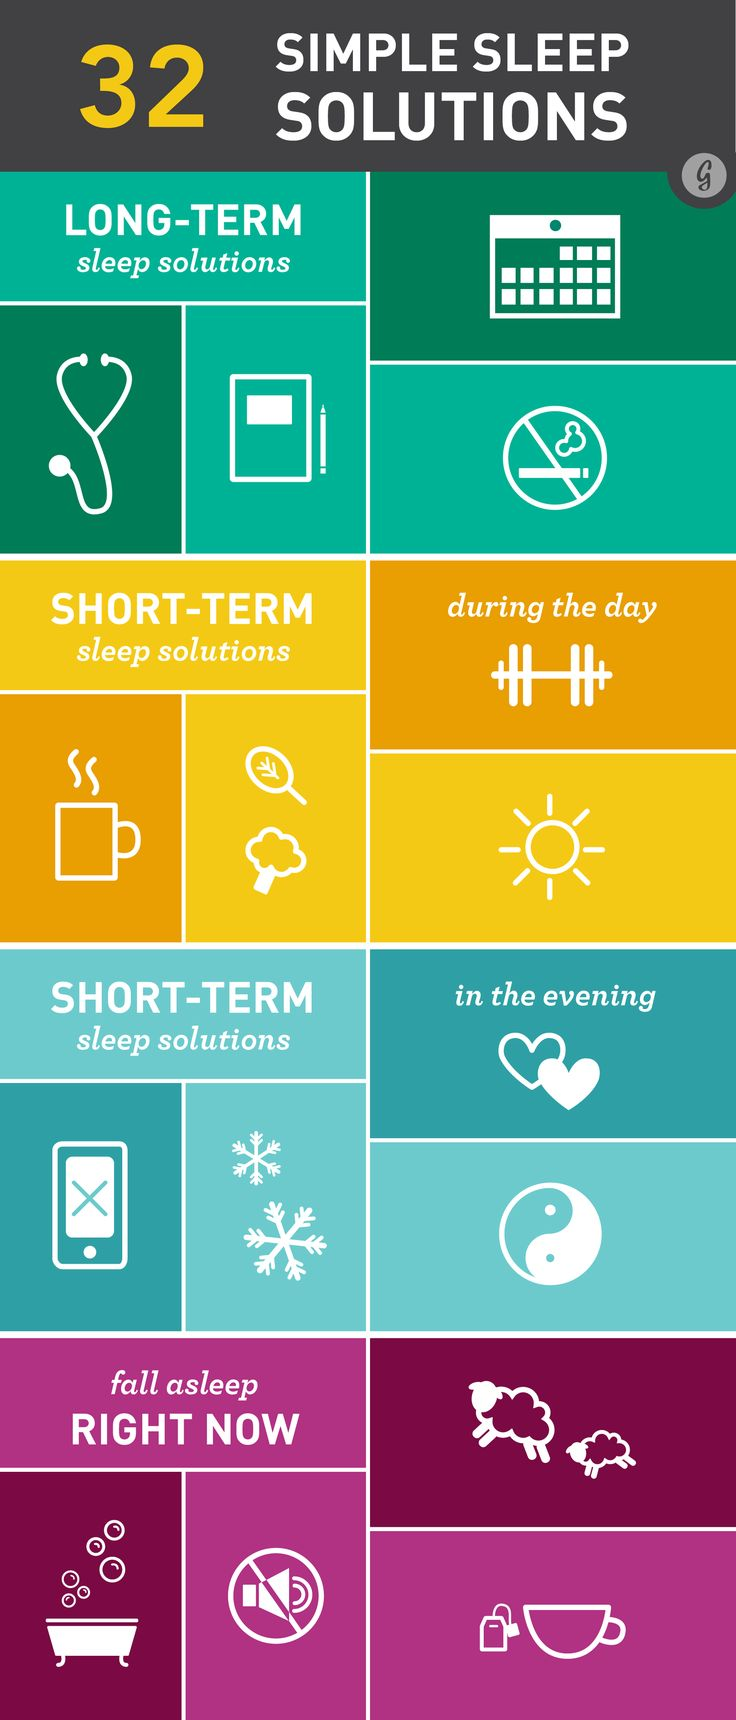 Find This Pin And More On Sleeprelatedgraphics